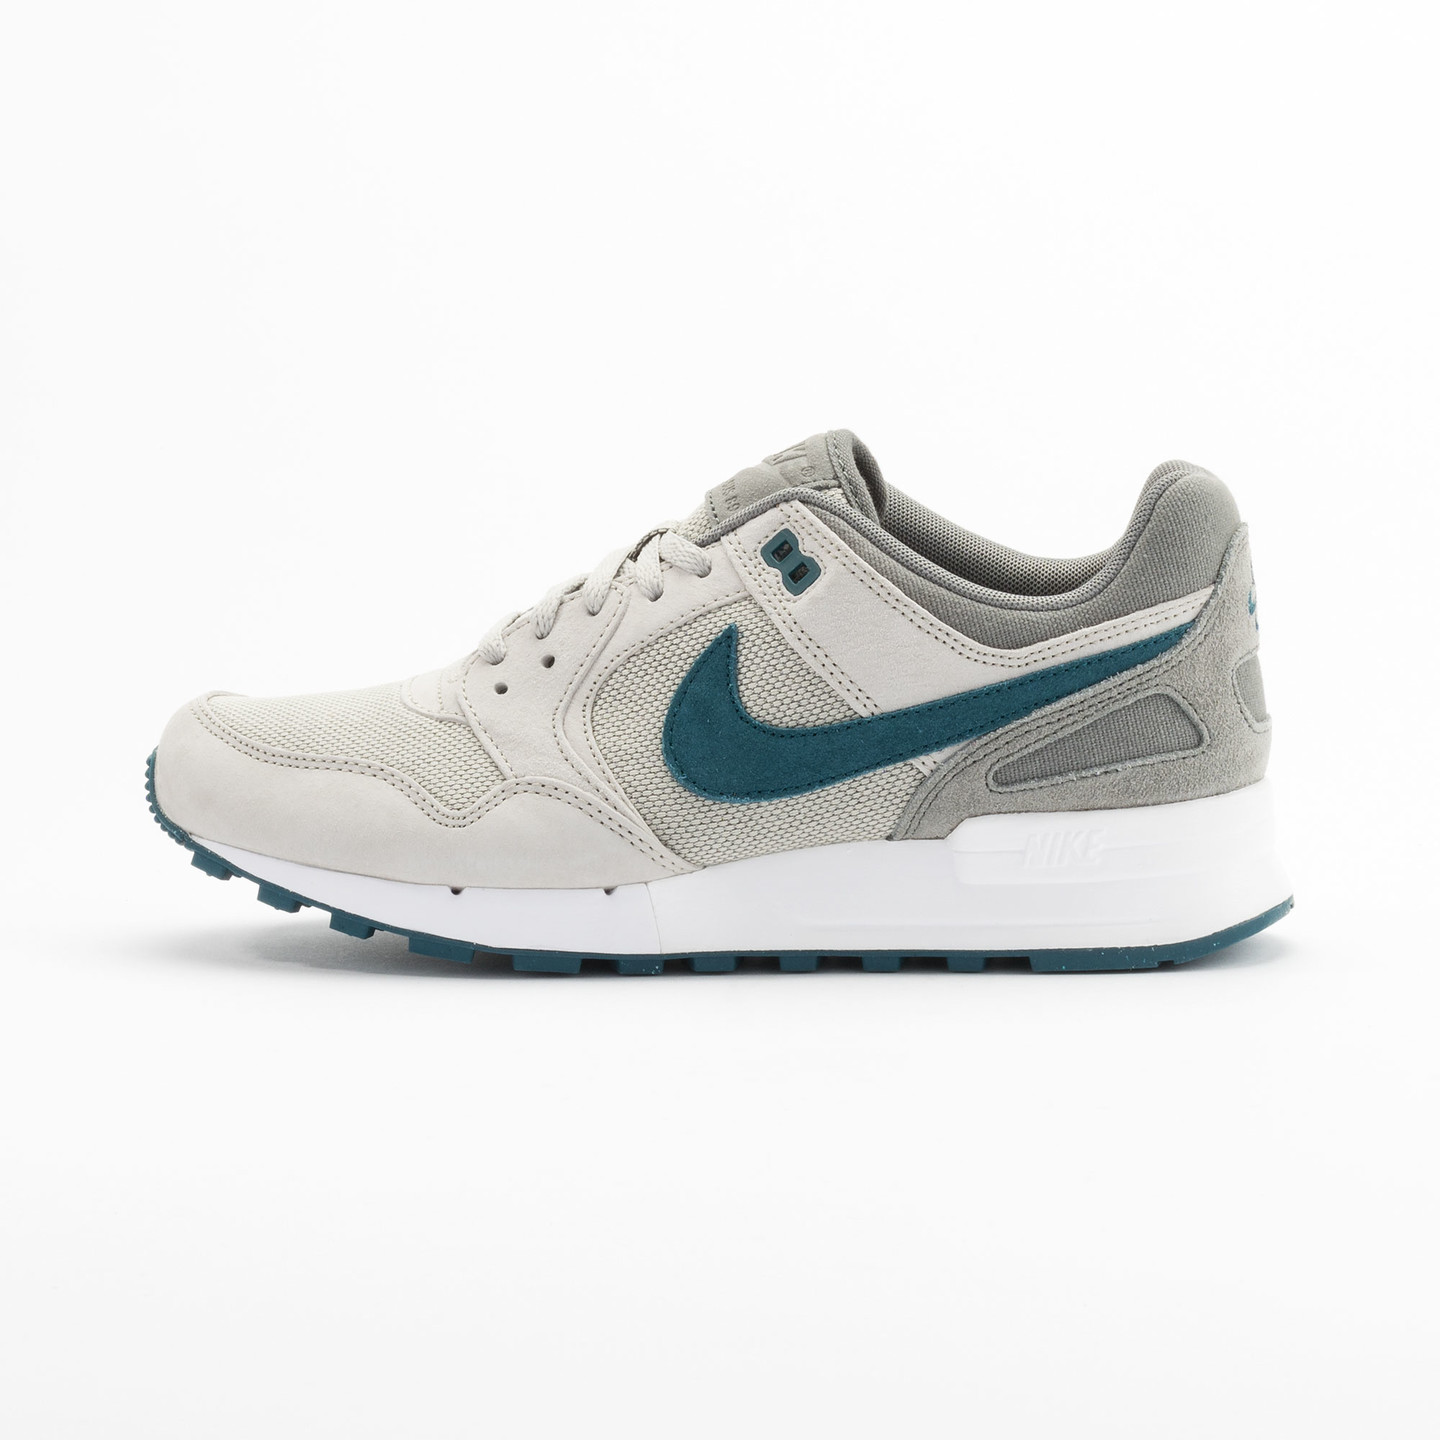 Nike Air Pegasus 89 Premium Lunar Grey / Teal - Tumbled Grey 724269-030-47